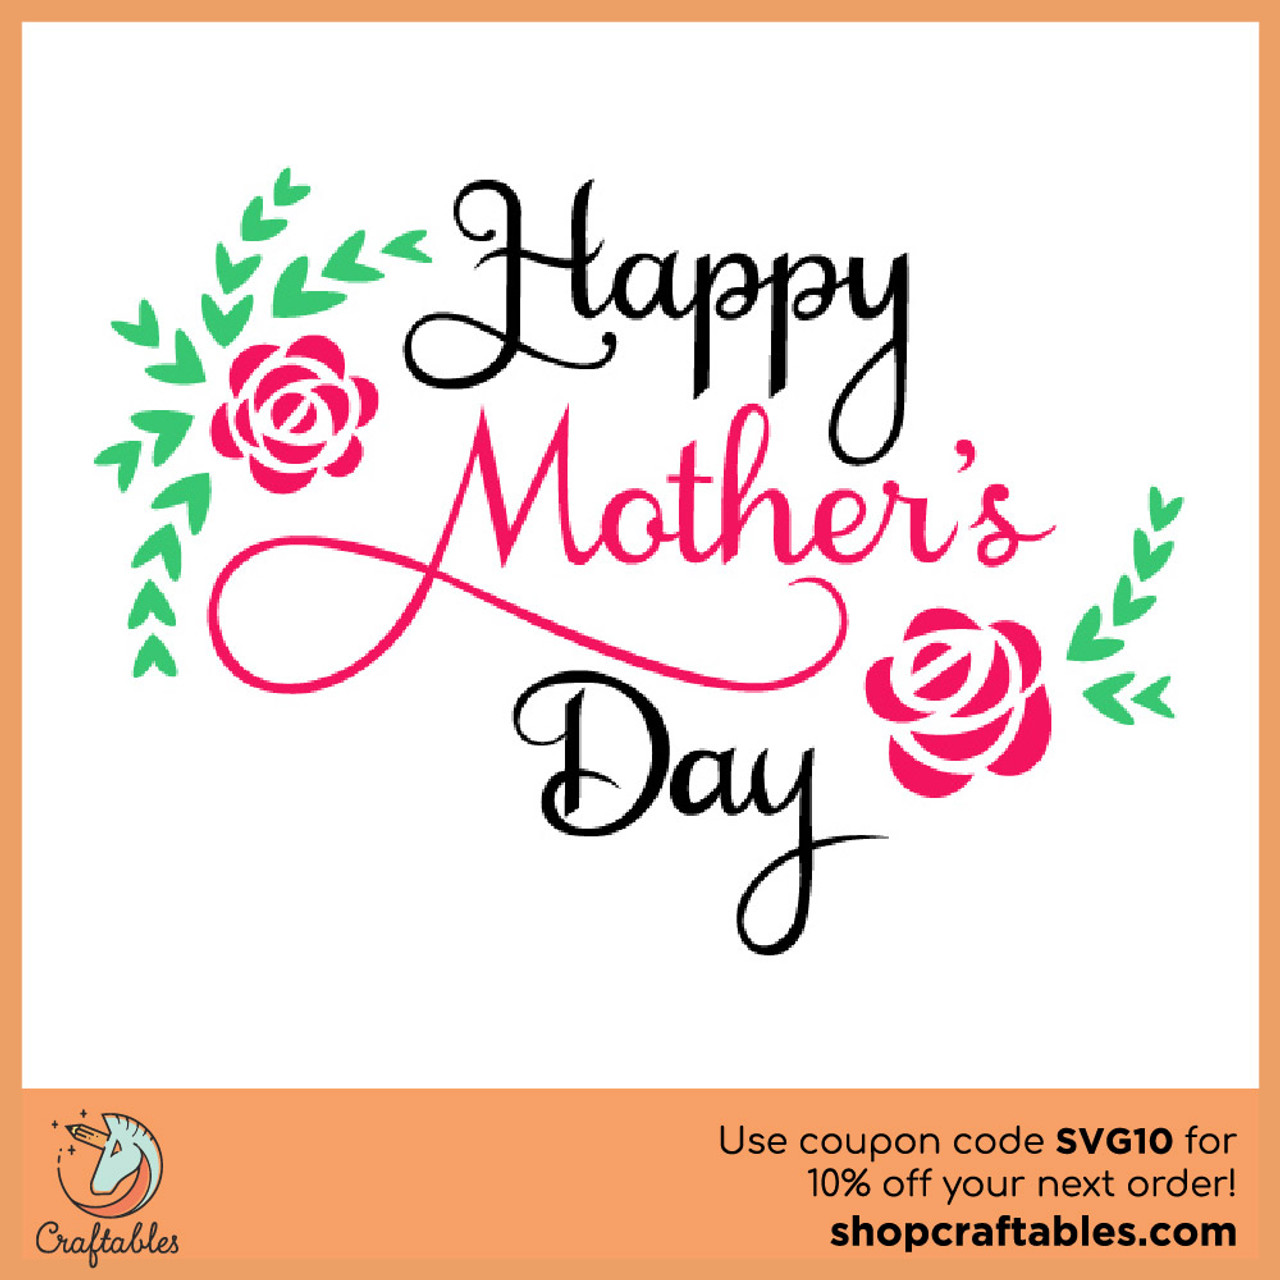 Free If you want to save any one of the cricut valentine's day card projects for future use, just pin one of the images below to your. Free Mother S Day Svg Cut File Craftables SVG, PNG, EPS, DXF File